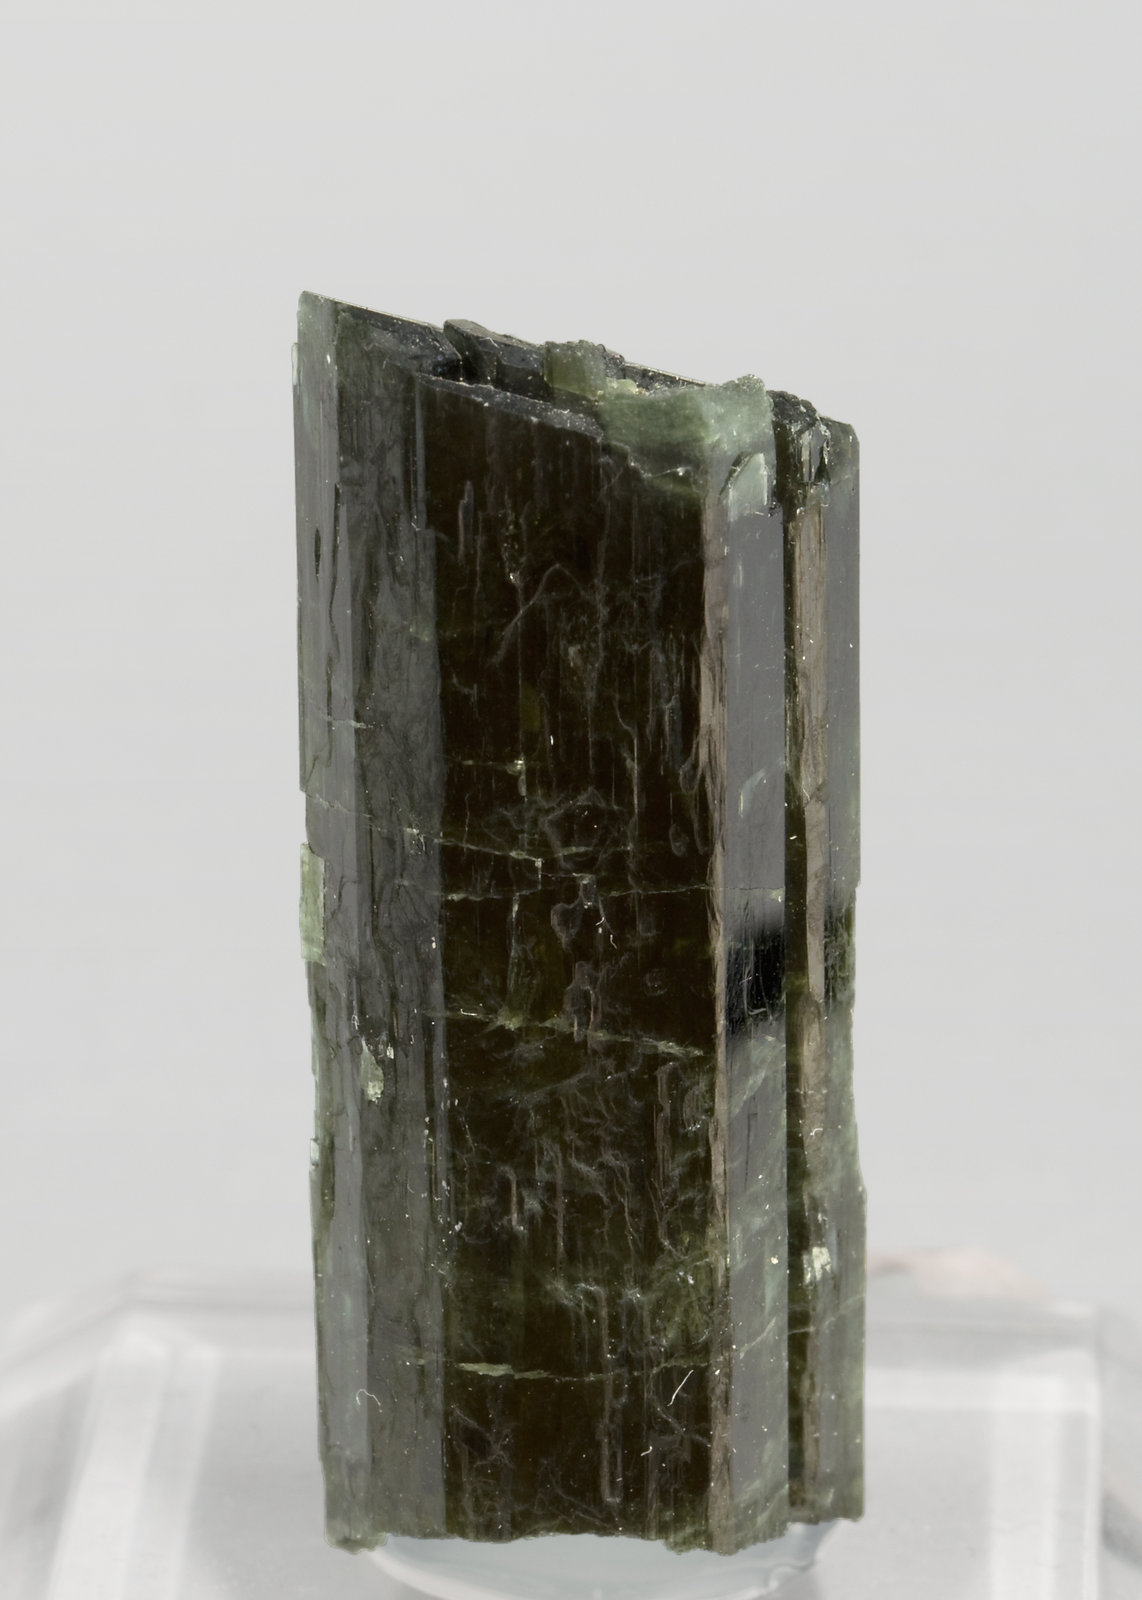 specimens/s_imagesR9/Tremolite-GB16R9f.jpg